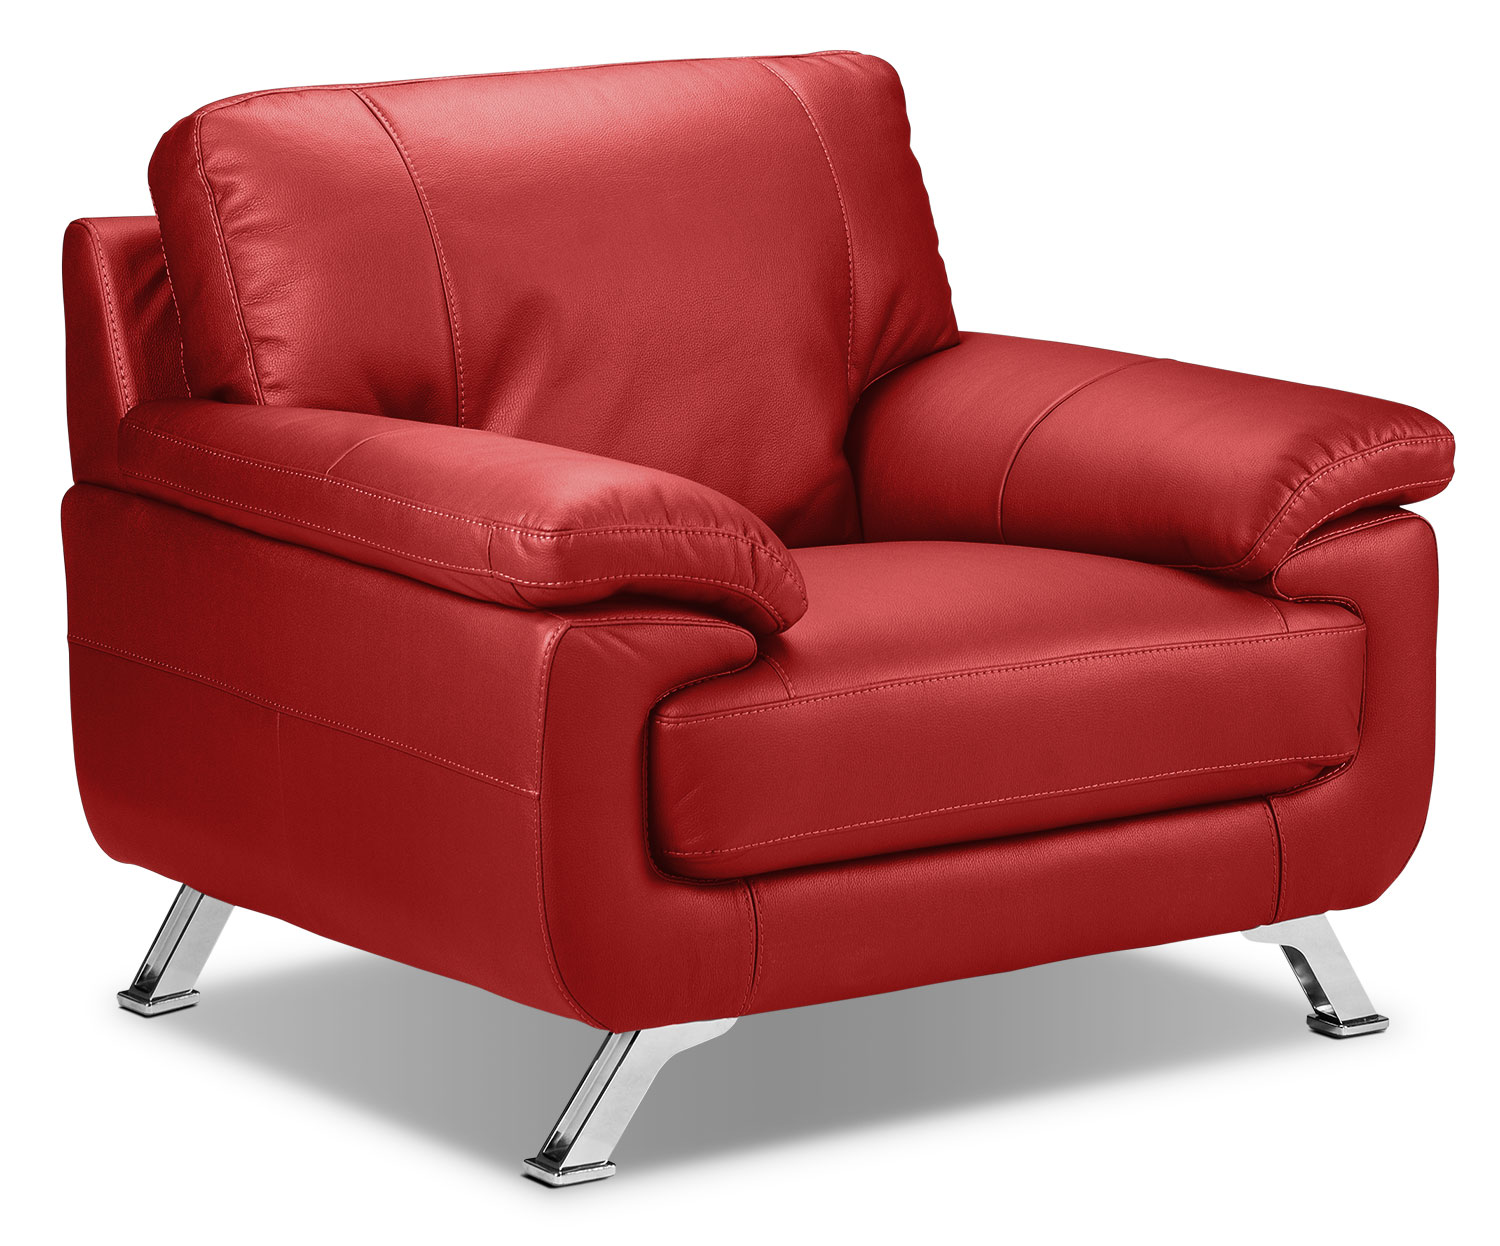 Infinity Chair - Red